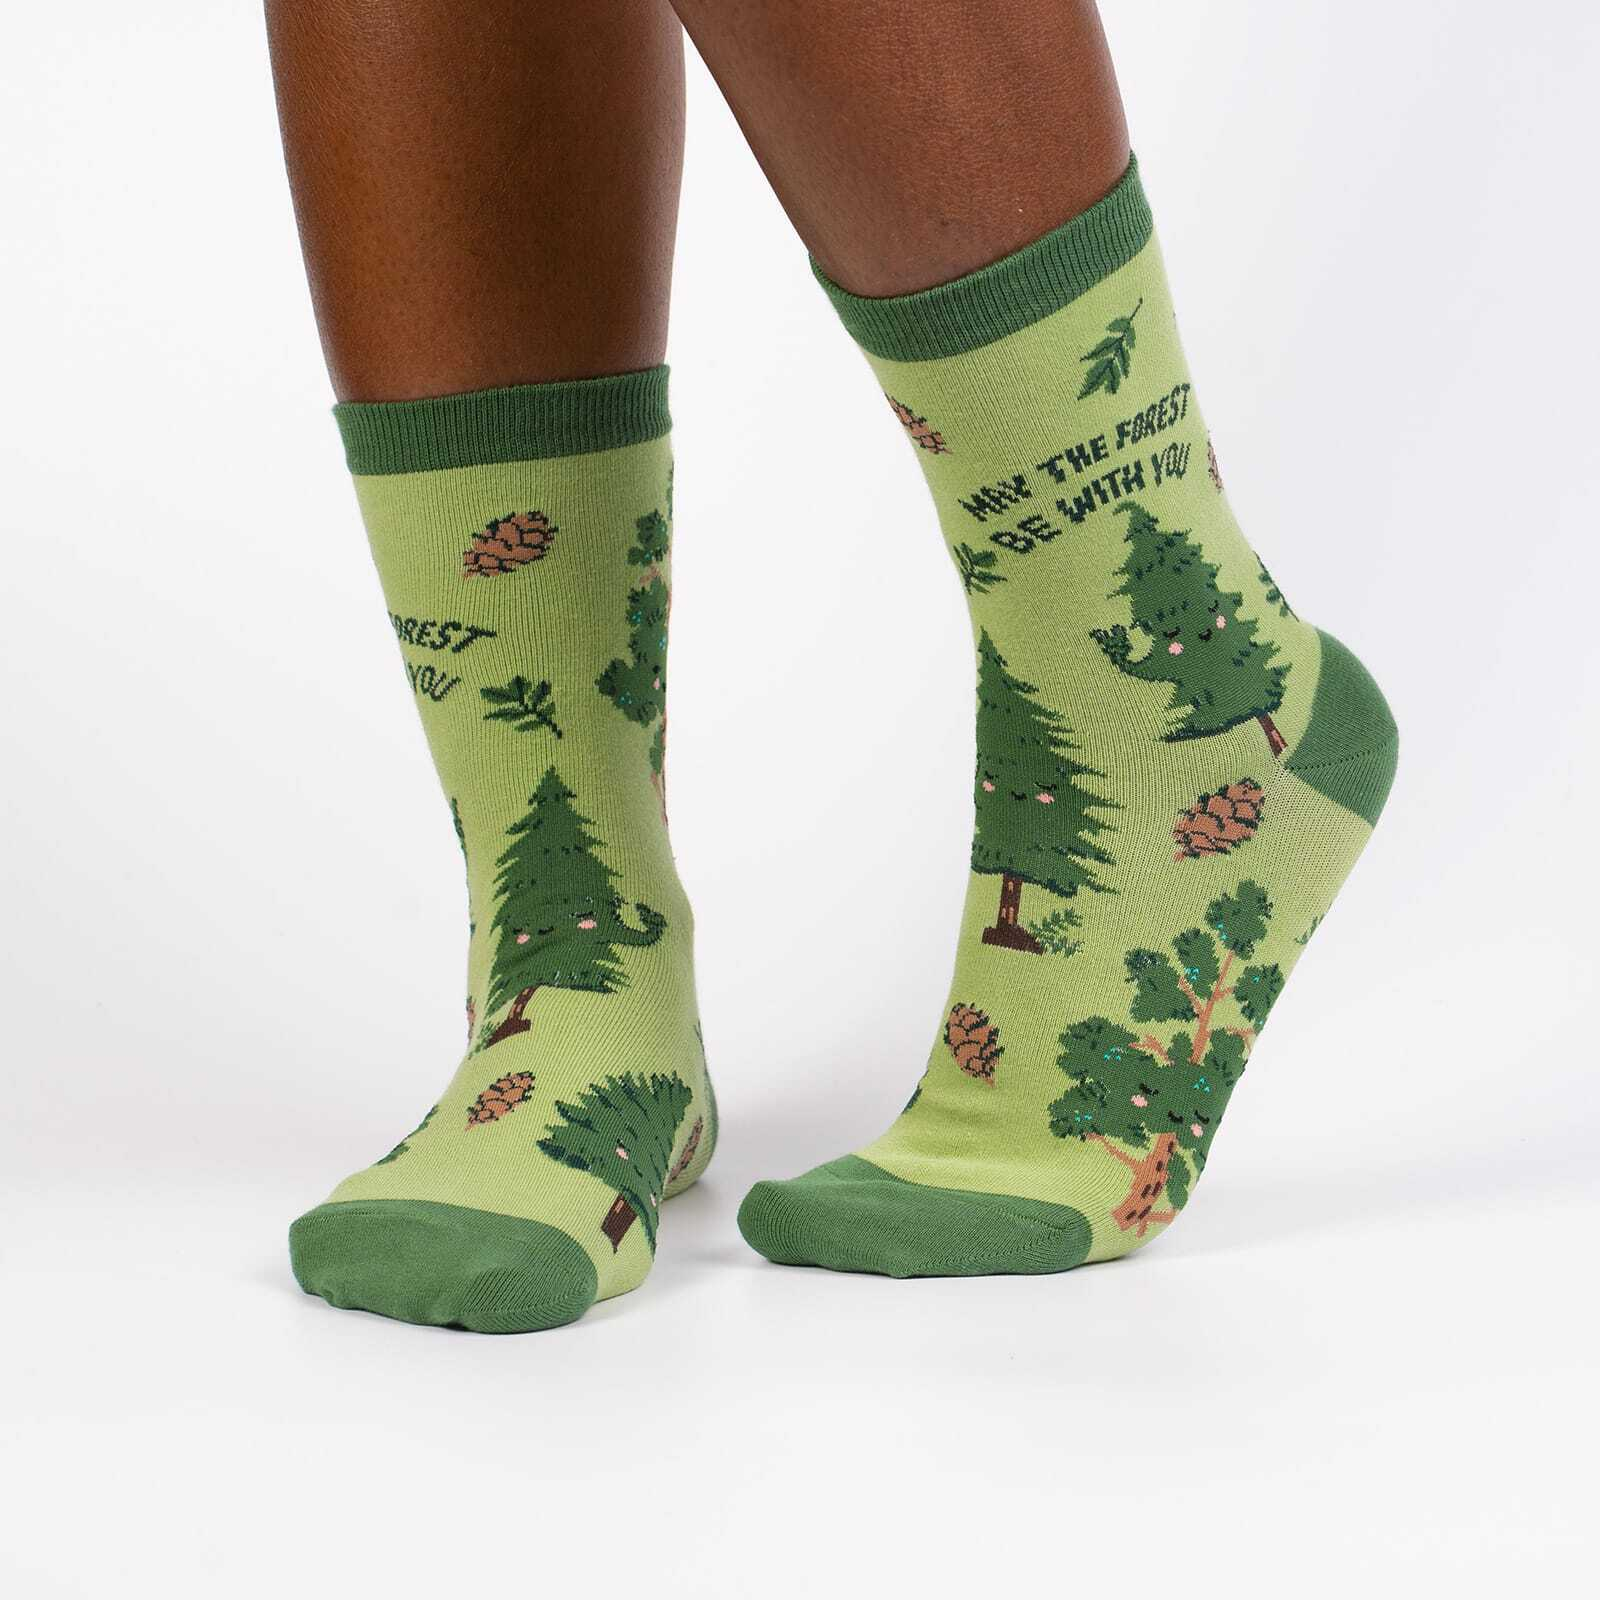 May The Forest Be With You - Nature Animal Wildlife Crew Socks Green - Women's in Green